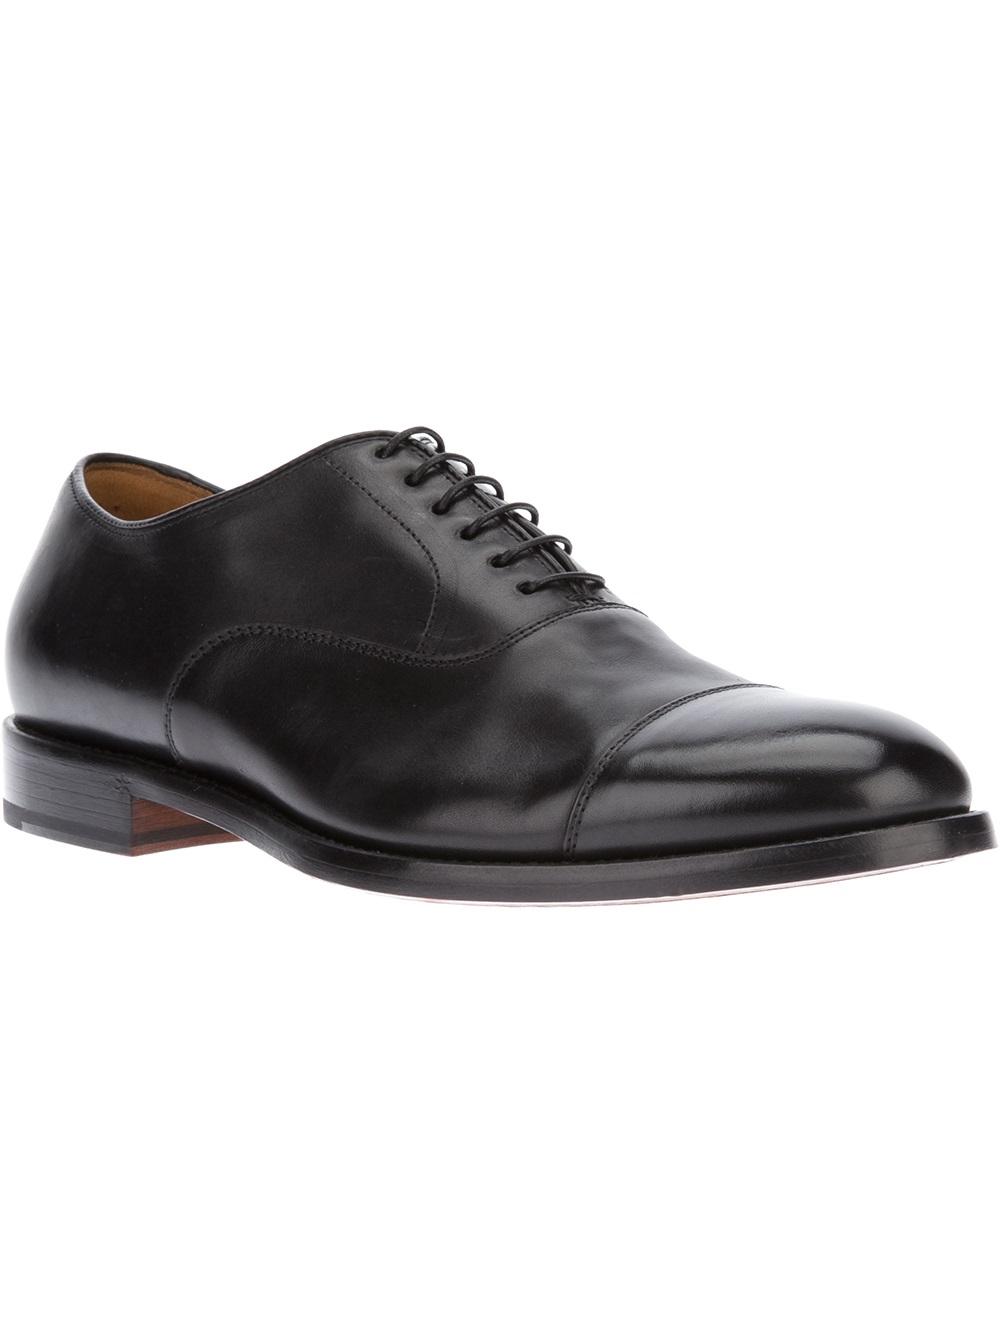 Lyst Doucal S Classic Oxford Shoes In Black For Men